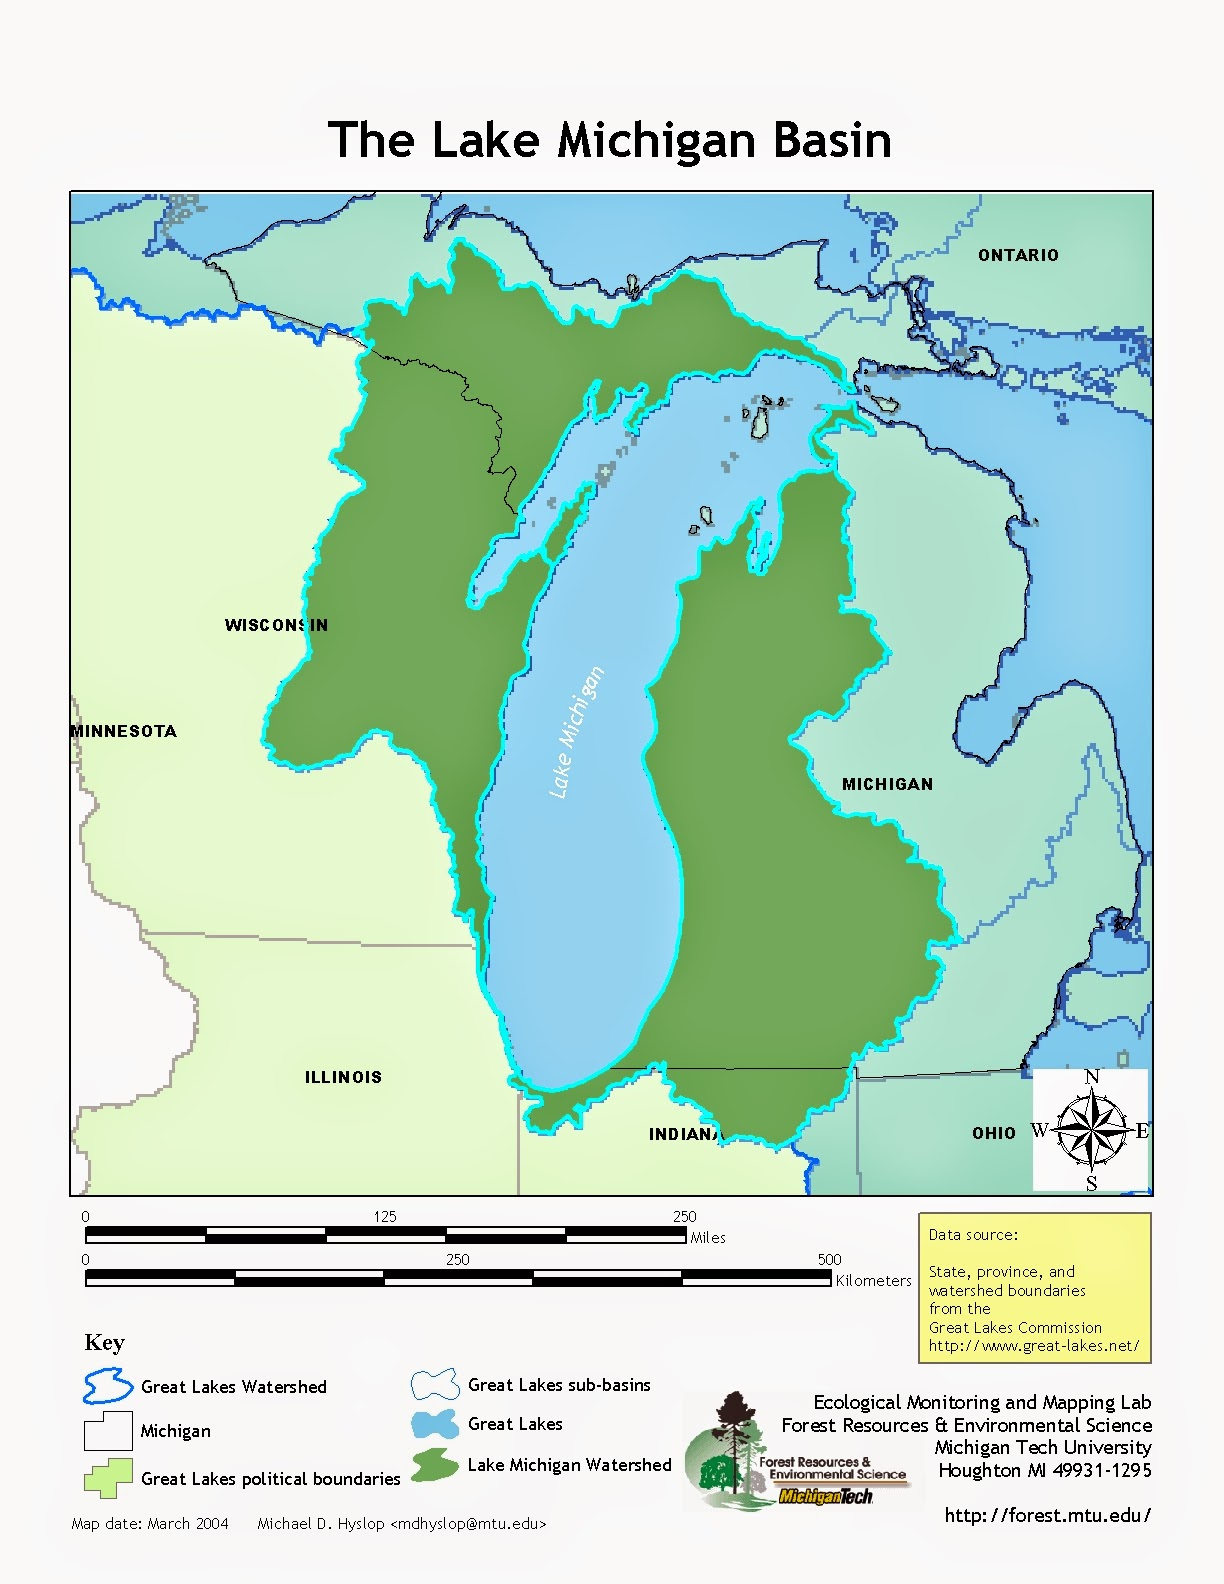 i find it interesting that in northern illinois the lake michigan watershed ends just two blocks to the west of my house on ridge rd up by the grocery